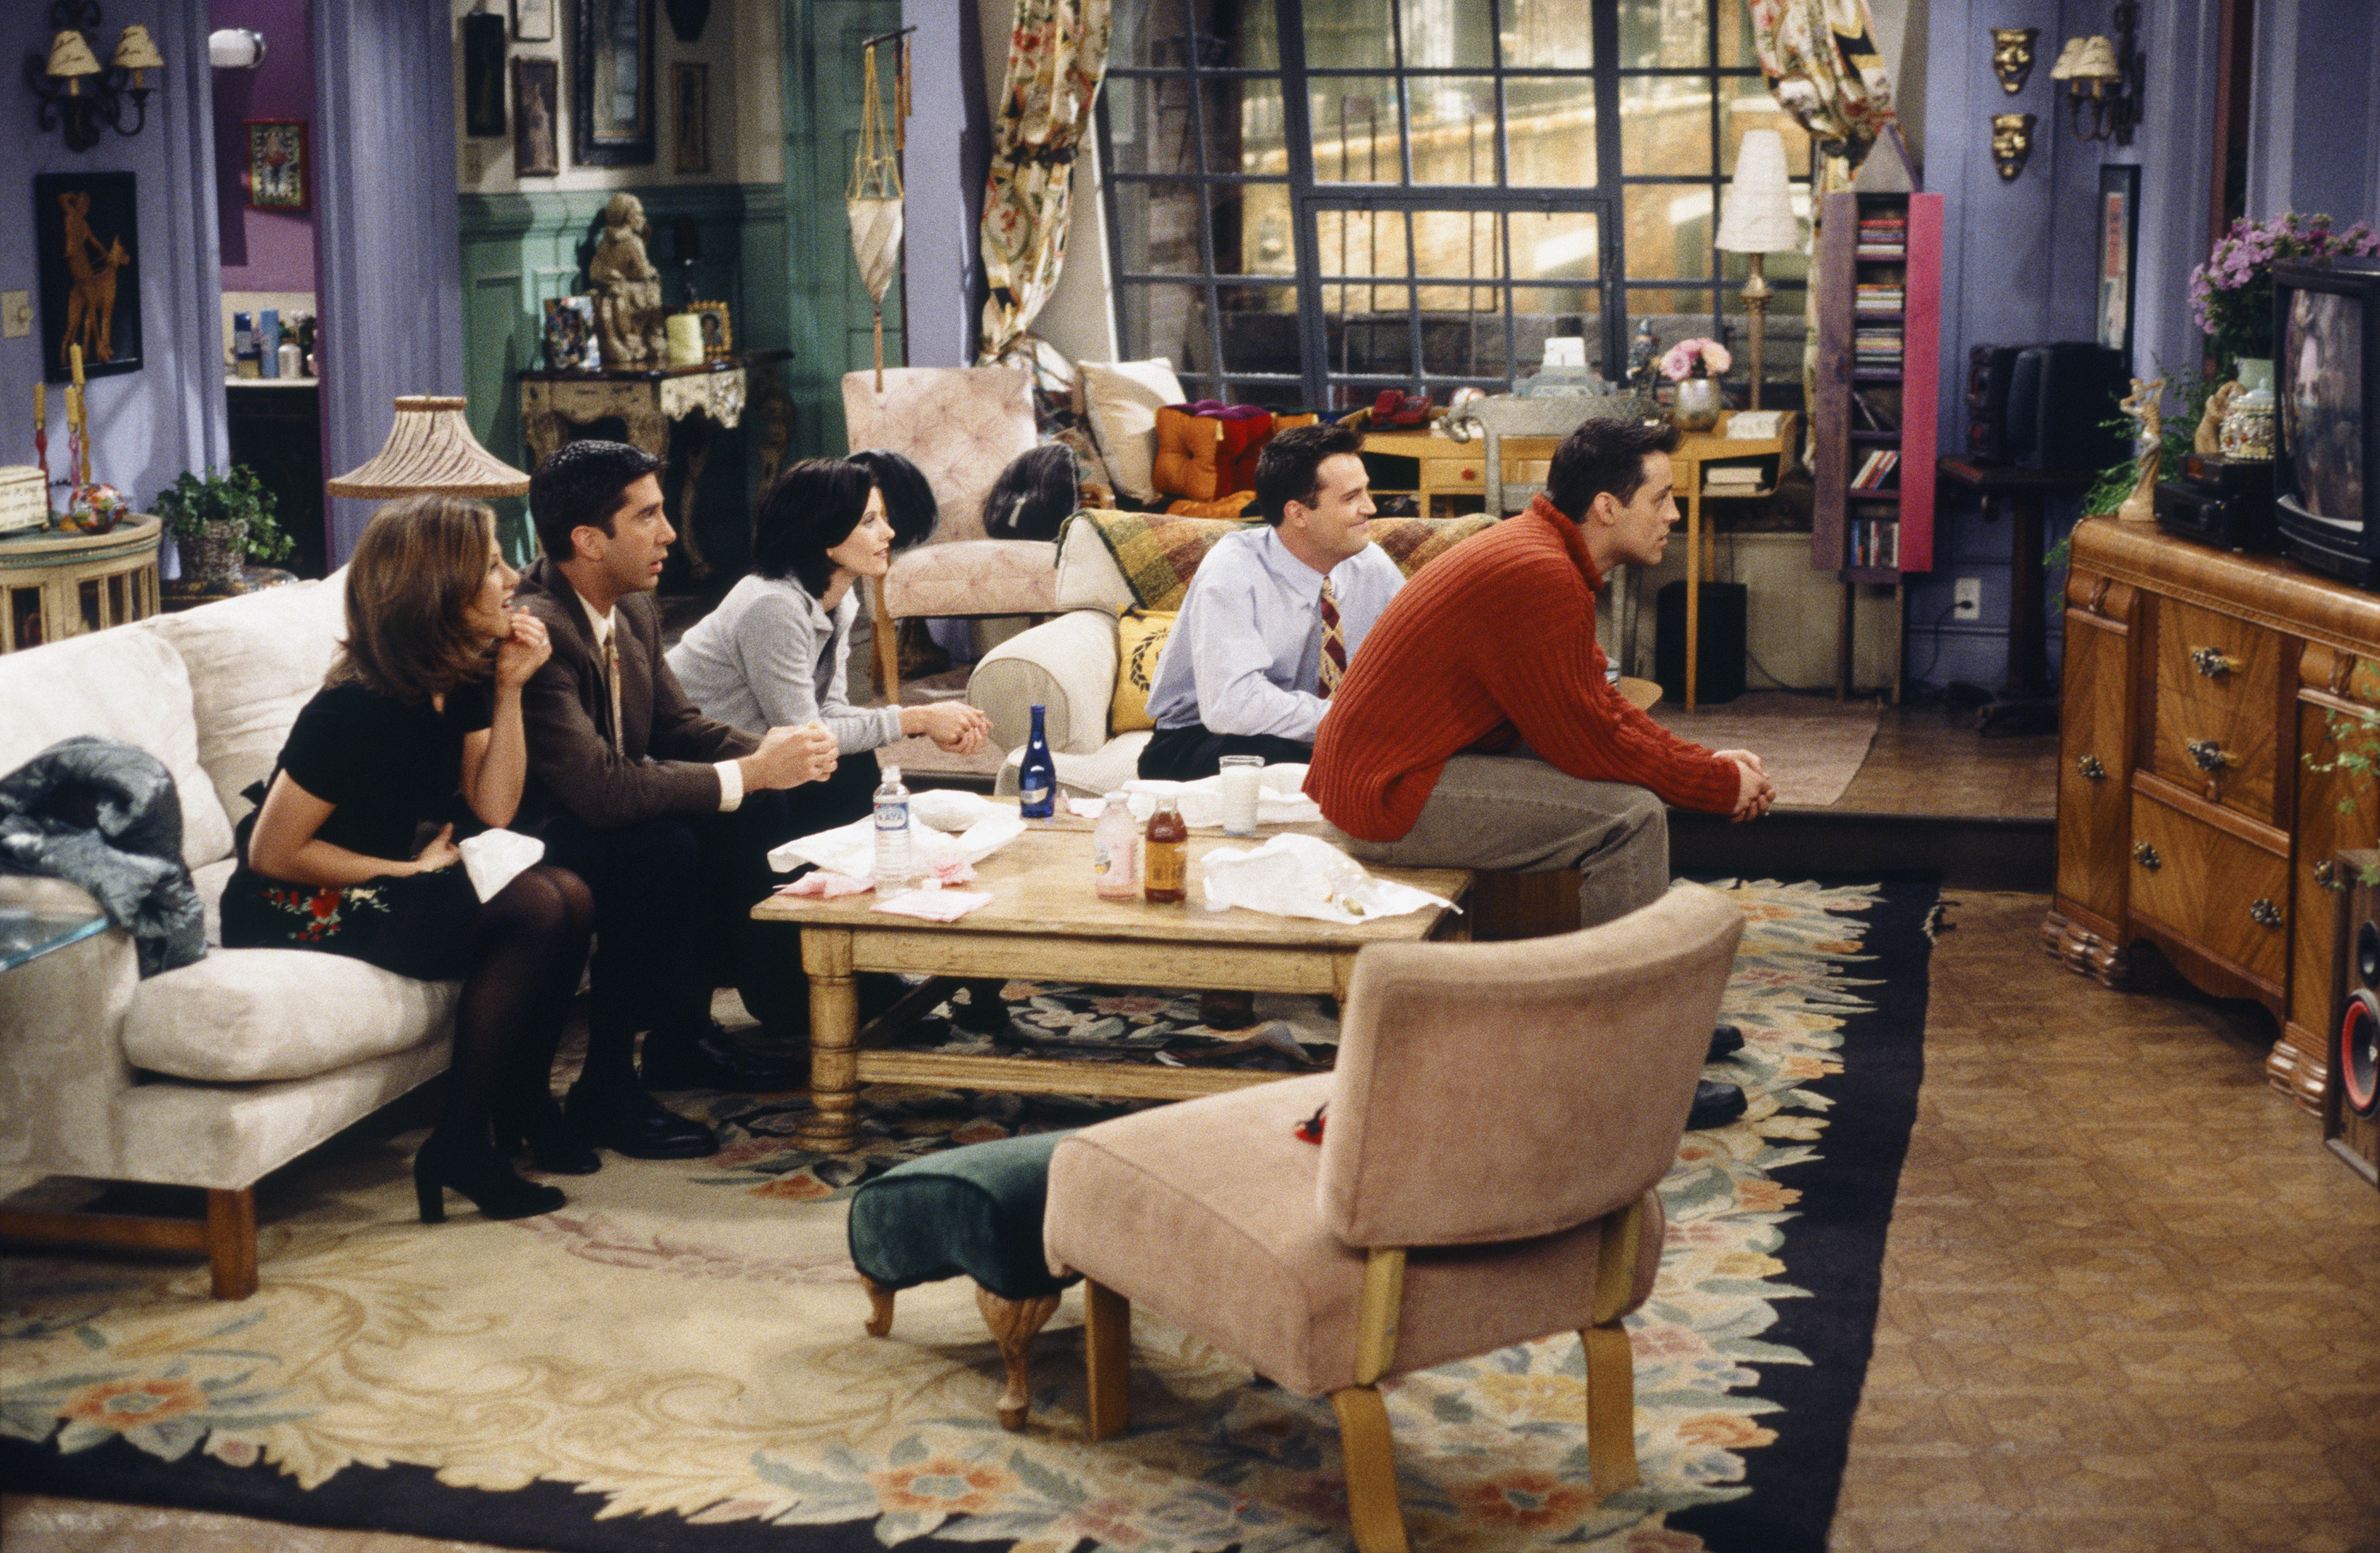 An episode of Friends, featuring the cast watching TV.